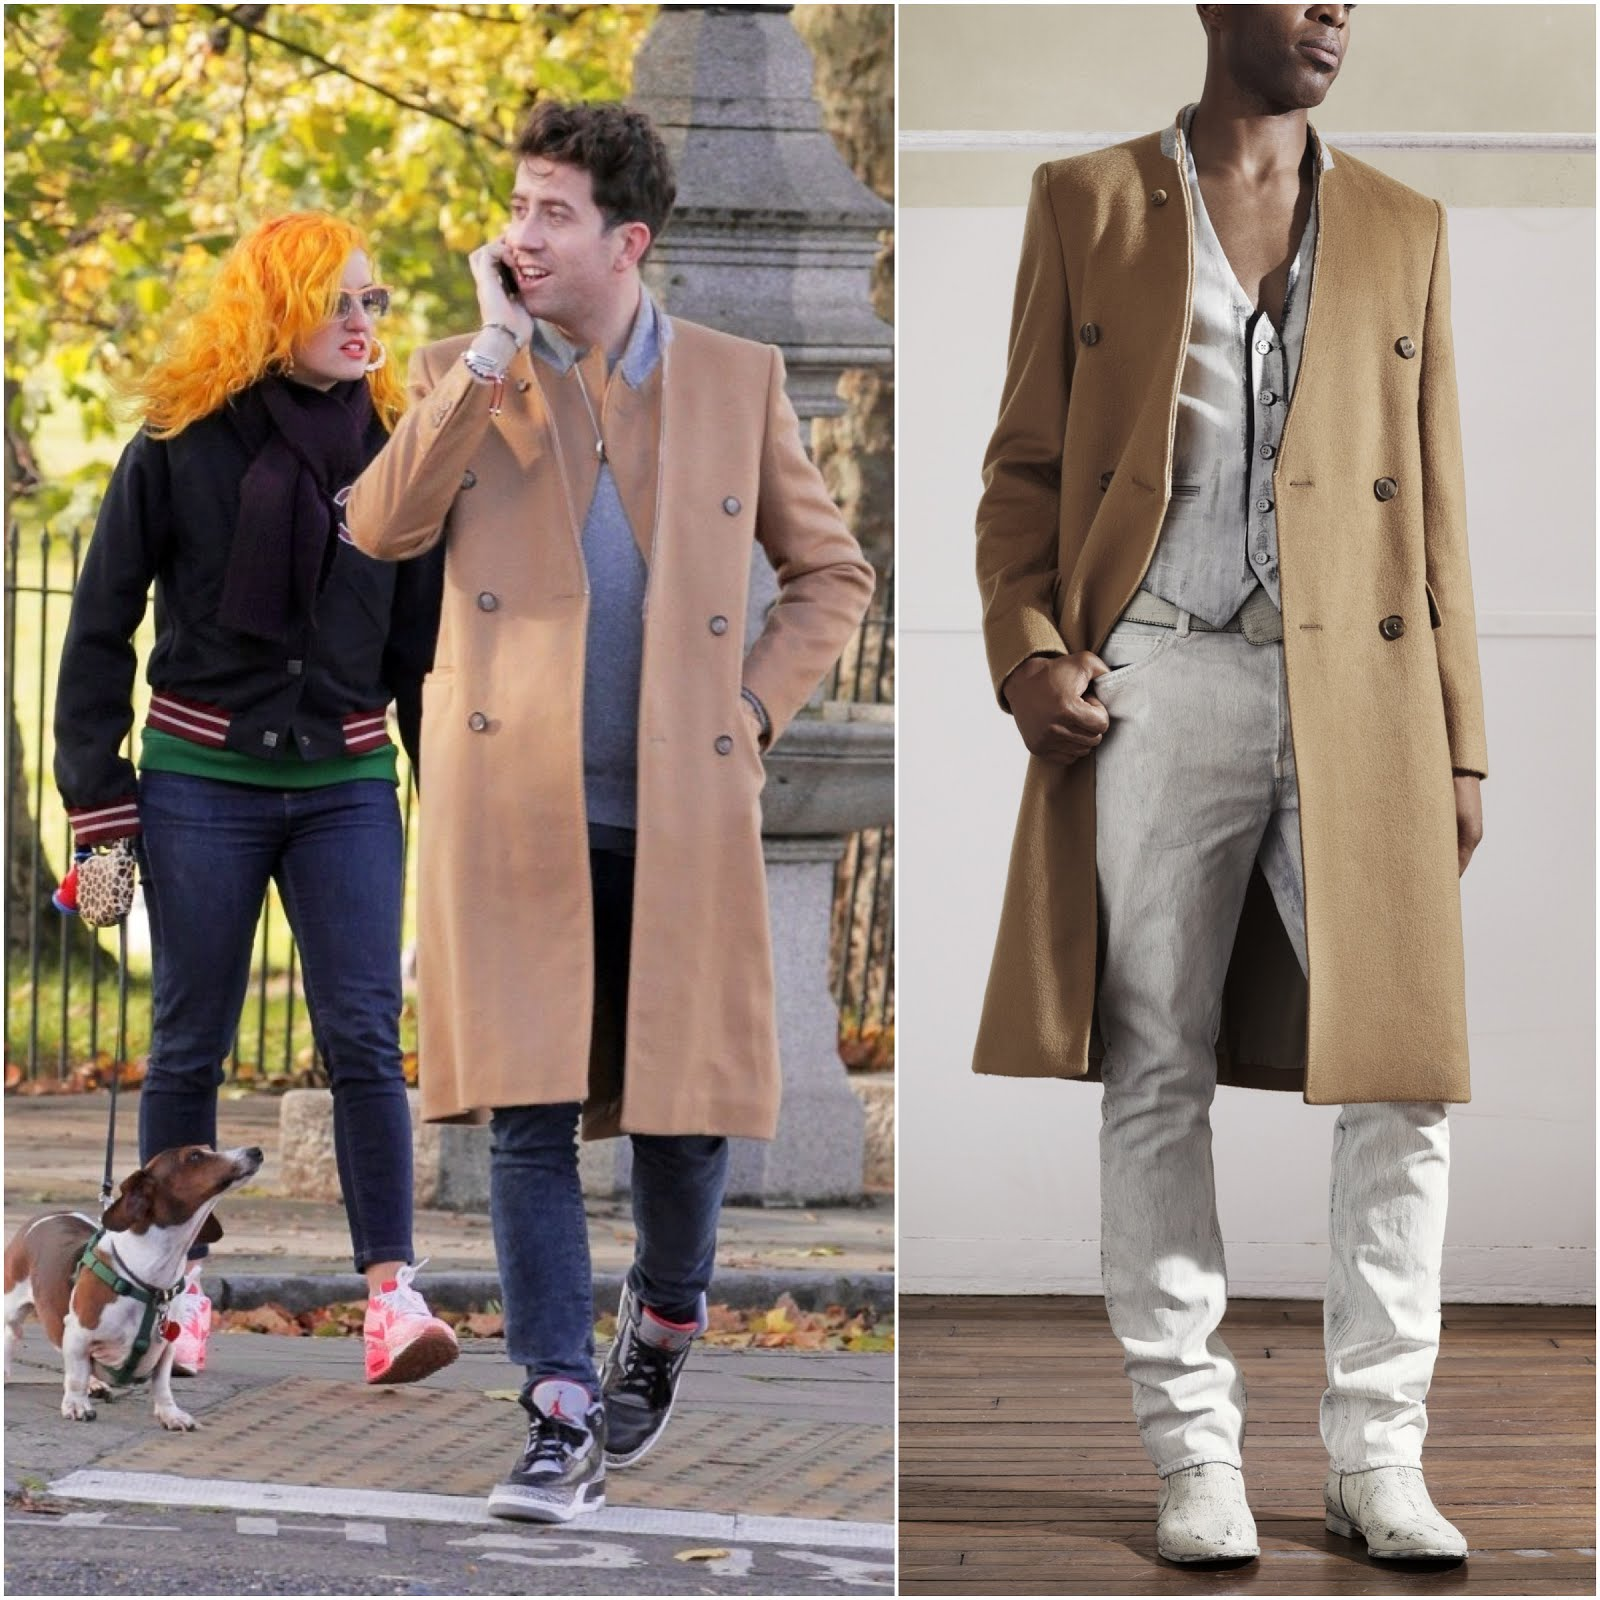 Nick Grimshaw in Maison Martin Margiela for H&M - Out and about in Primrose Hill, London 00O00 Menswear Blog Celebrity Style